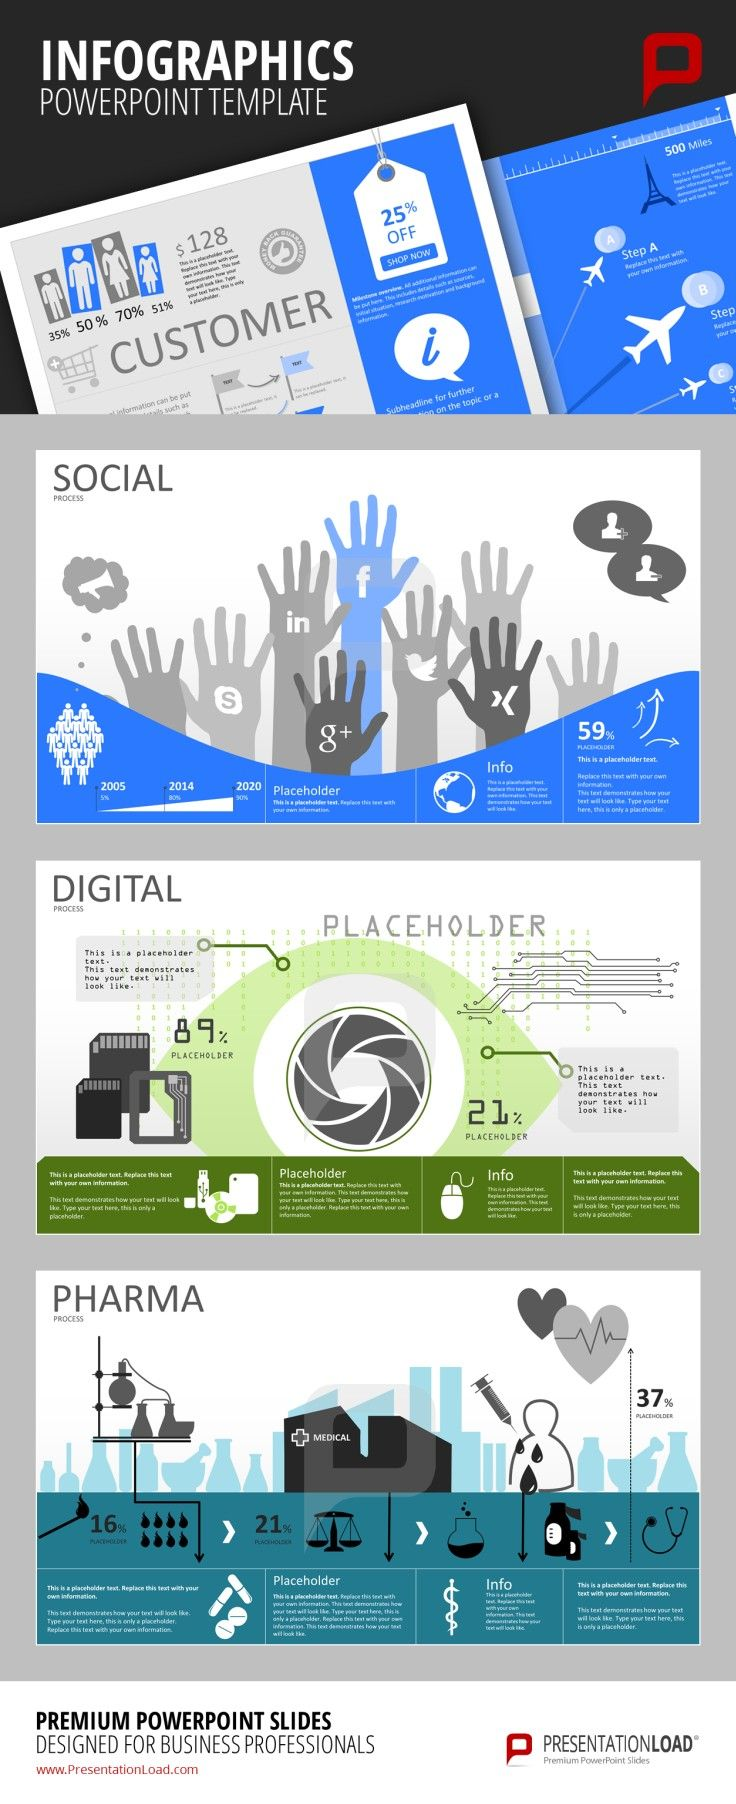 Infographic PowerPoint Templates Visualize your company's activity in social networks such as Facebook, Xing, LinkedIn or Google+. You can also create appeling infographics to explain digital processes. You can also easily provide your audience with information regarding the creation of pharma products. #presentationload  www.presentationl...